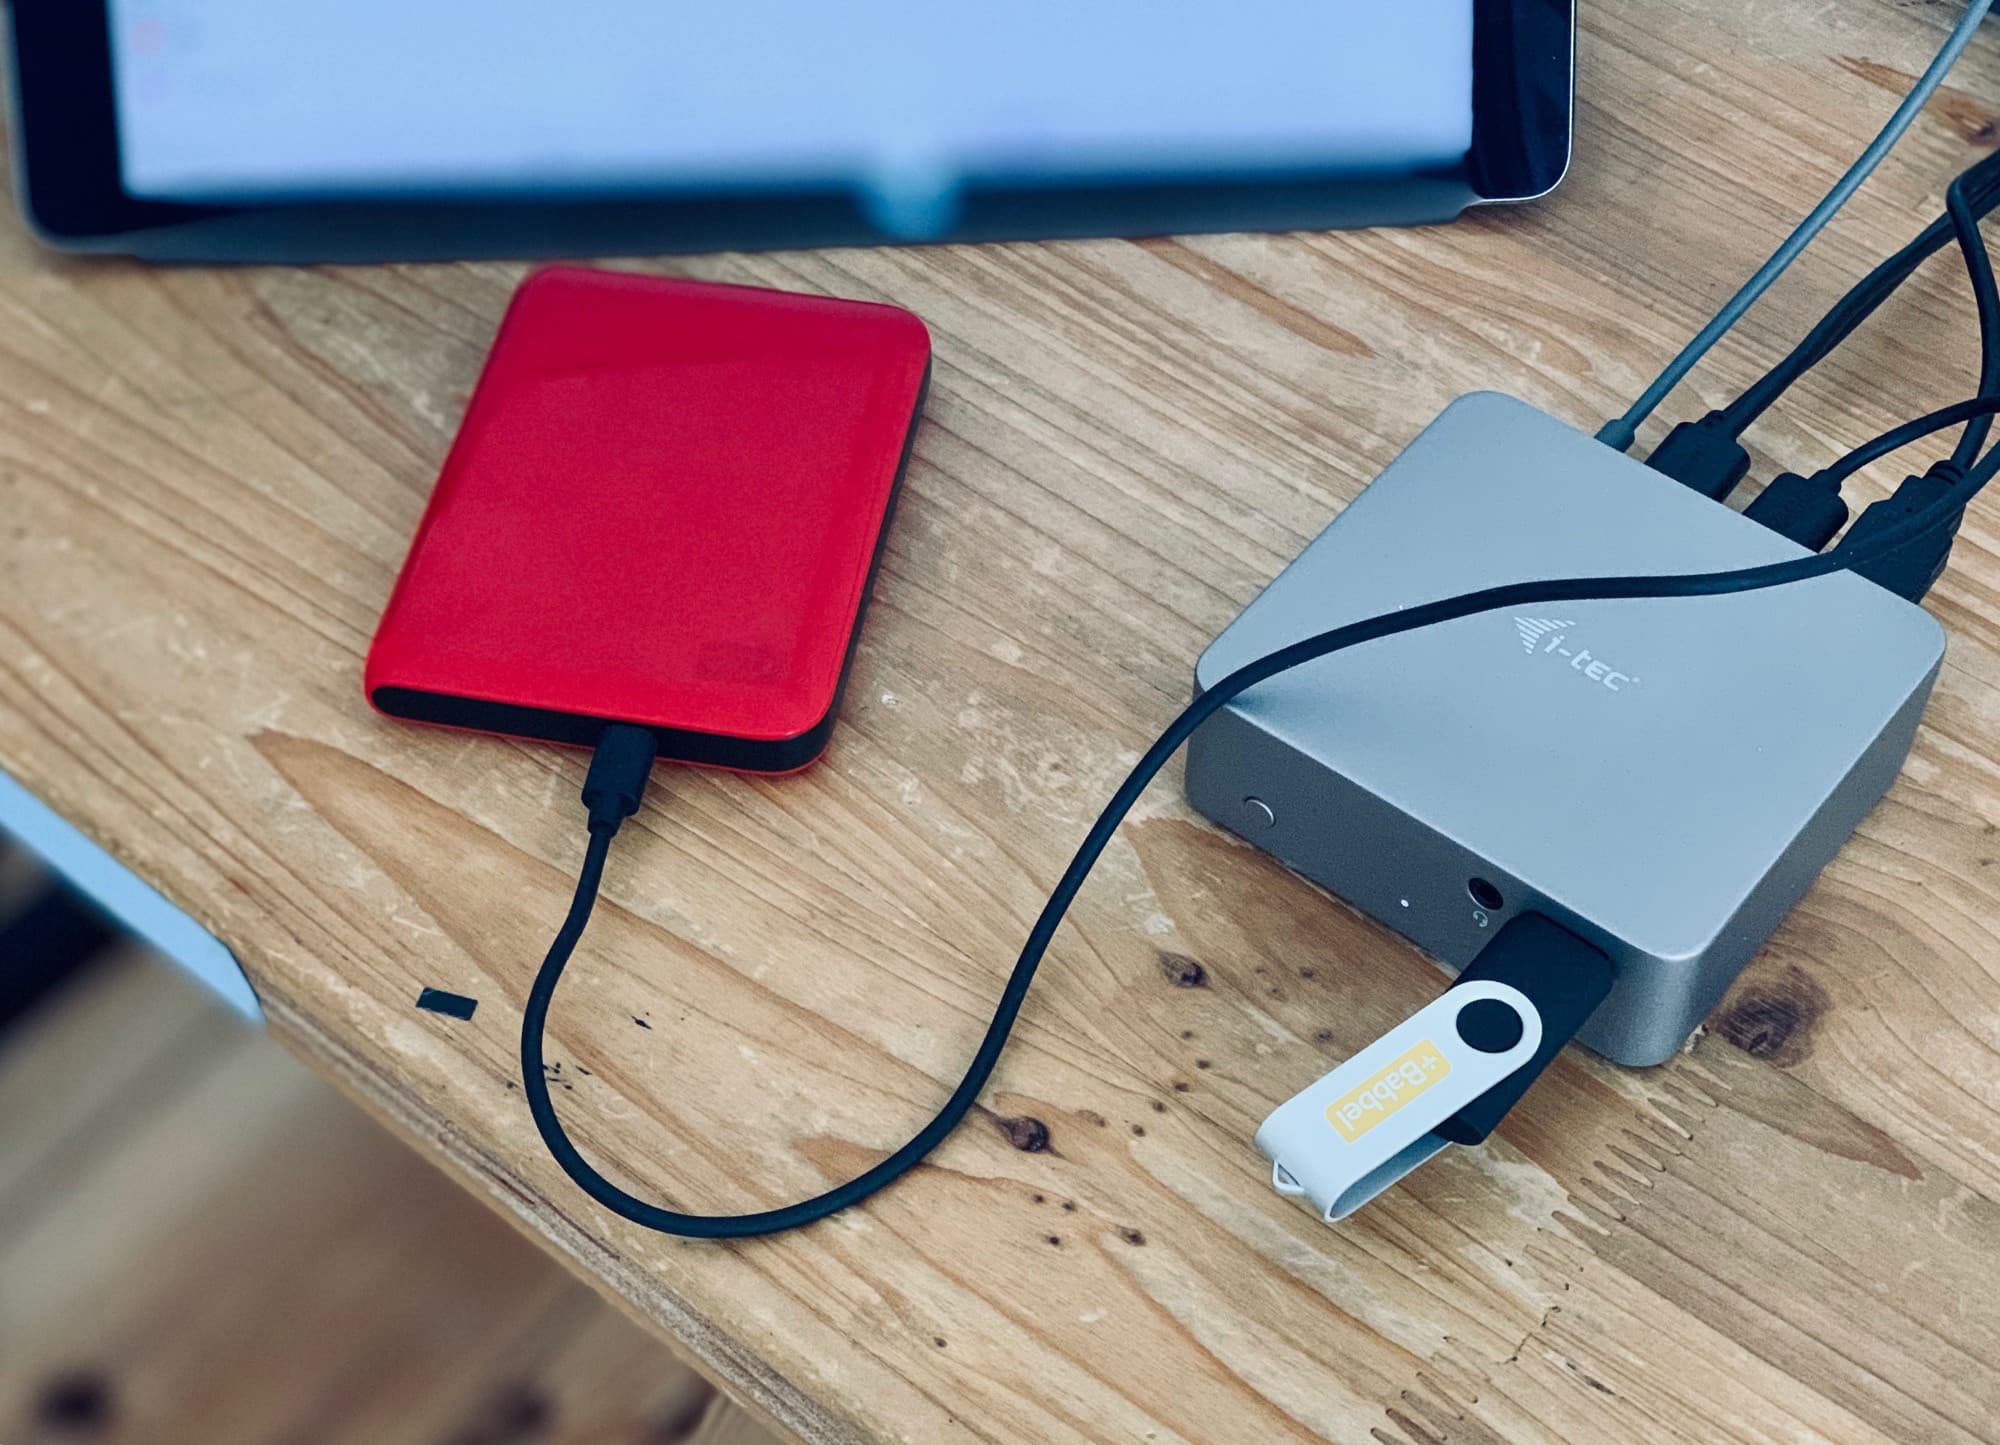 Hook up any and all USB storage devices to your iPad.